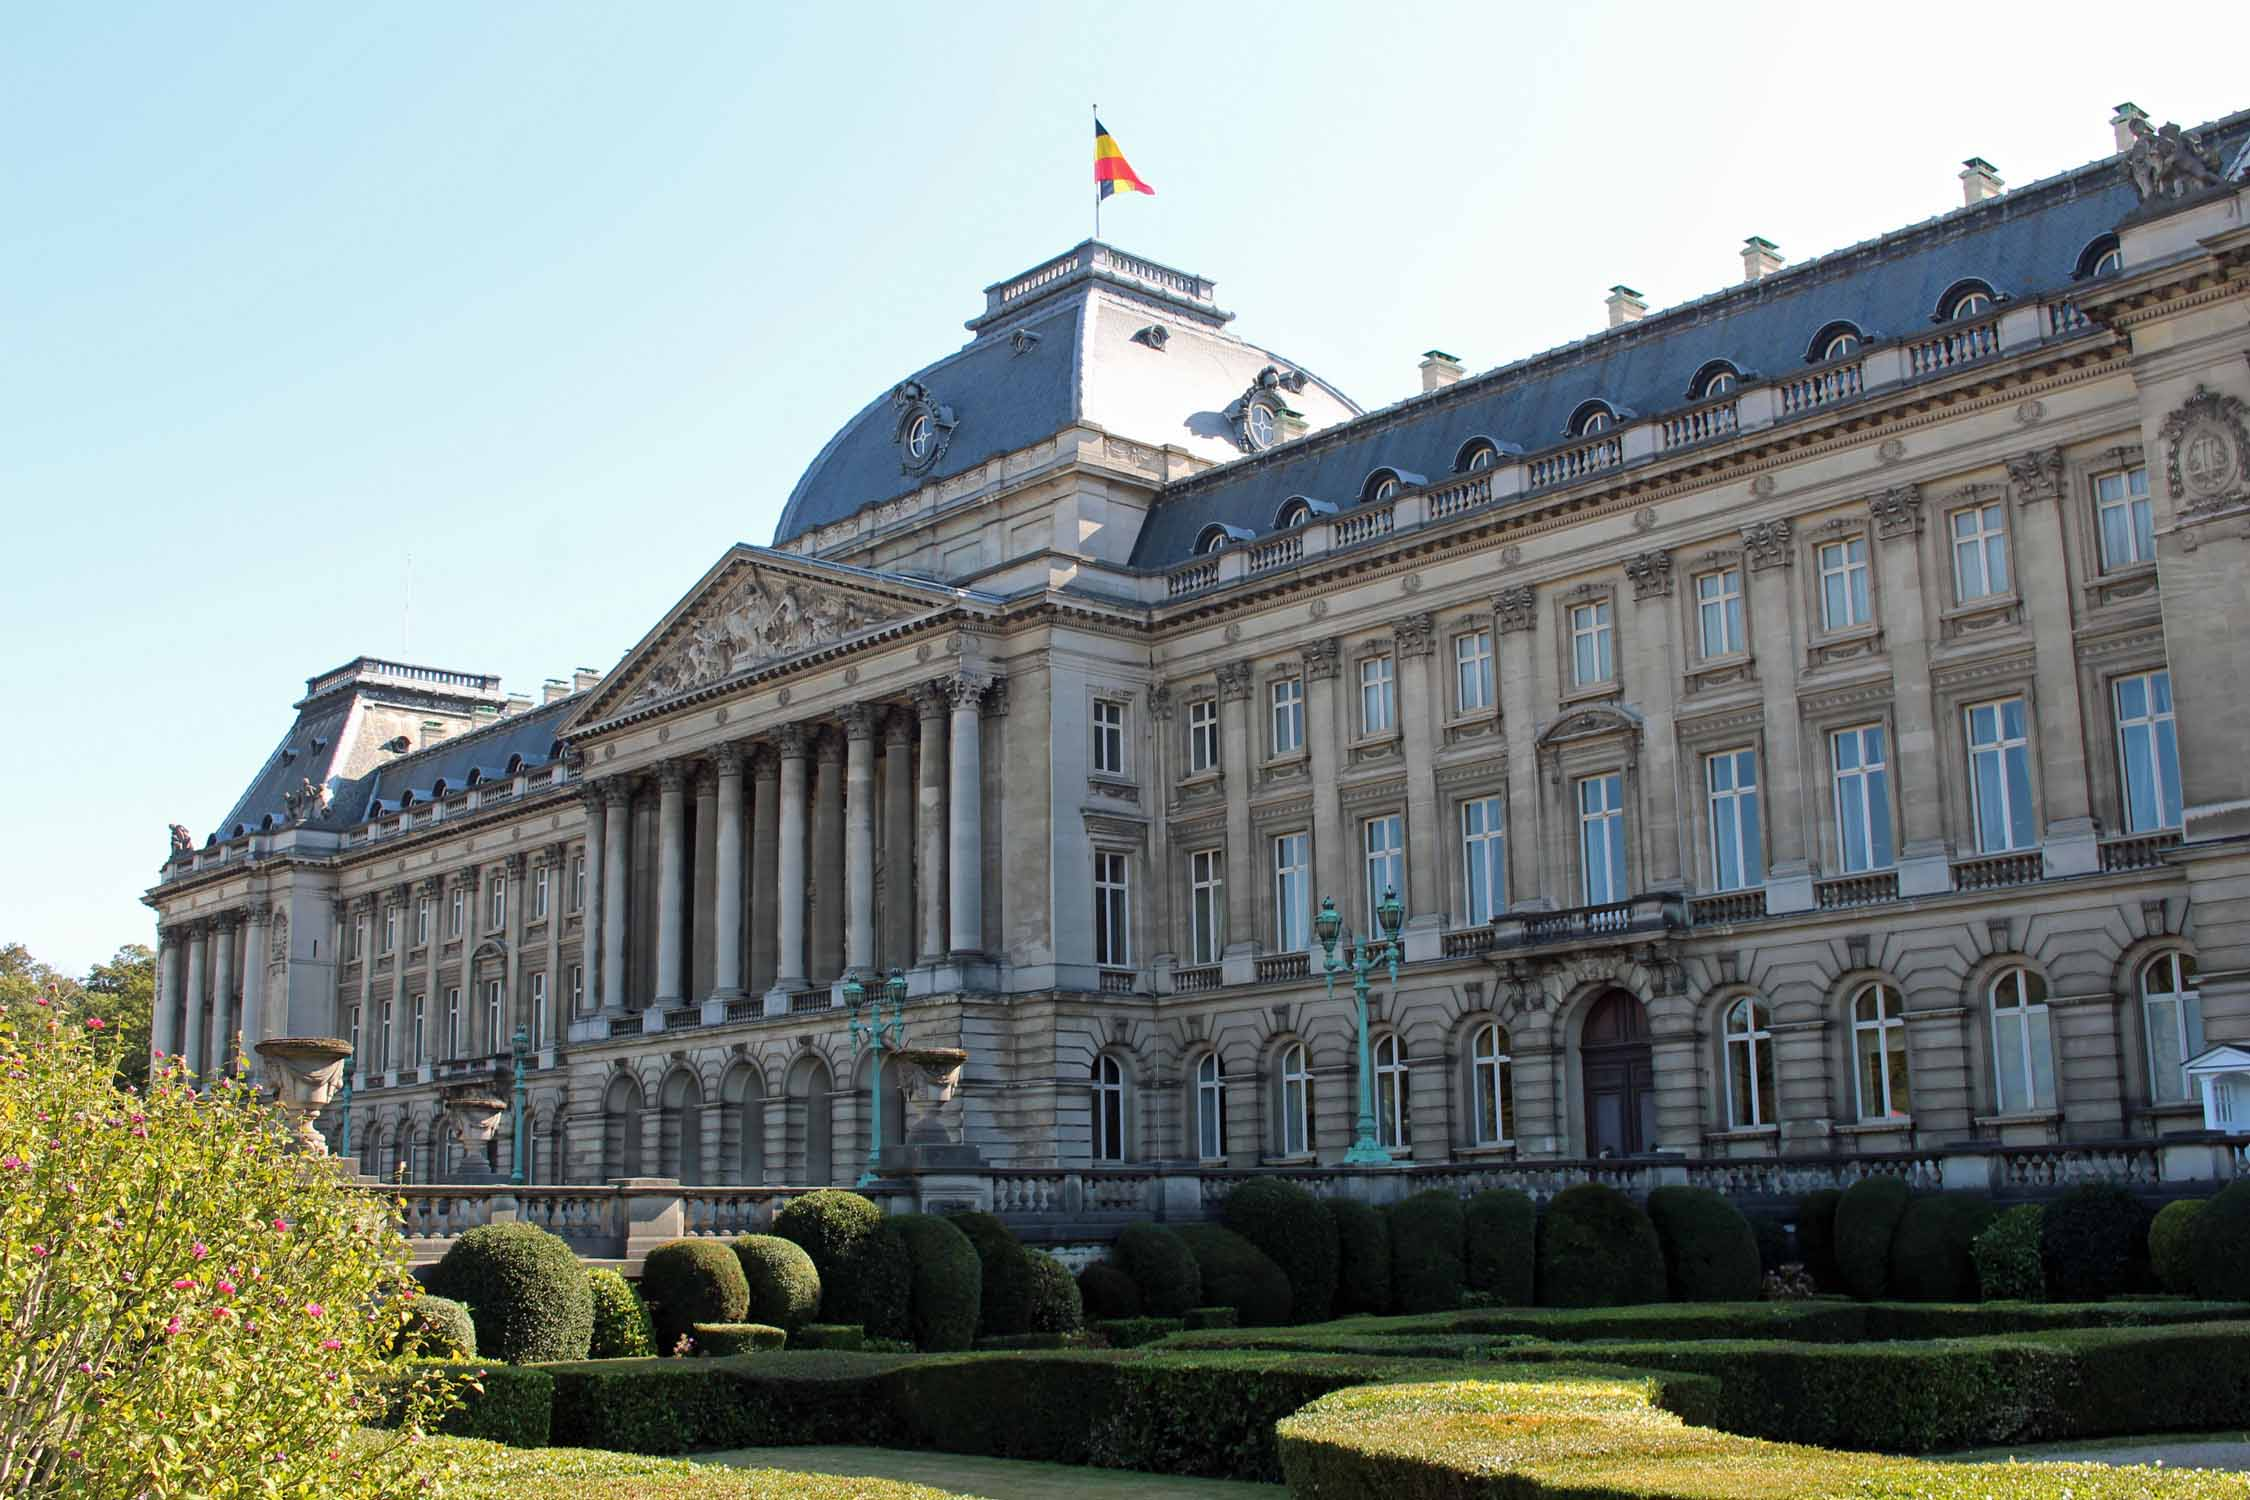 Brussels, the beautiful Royal Palace